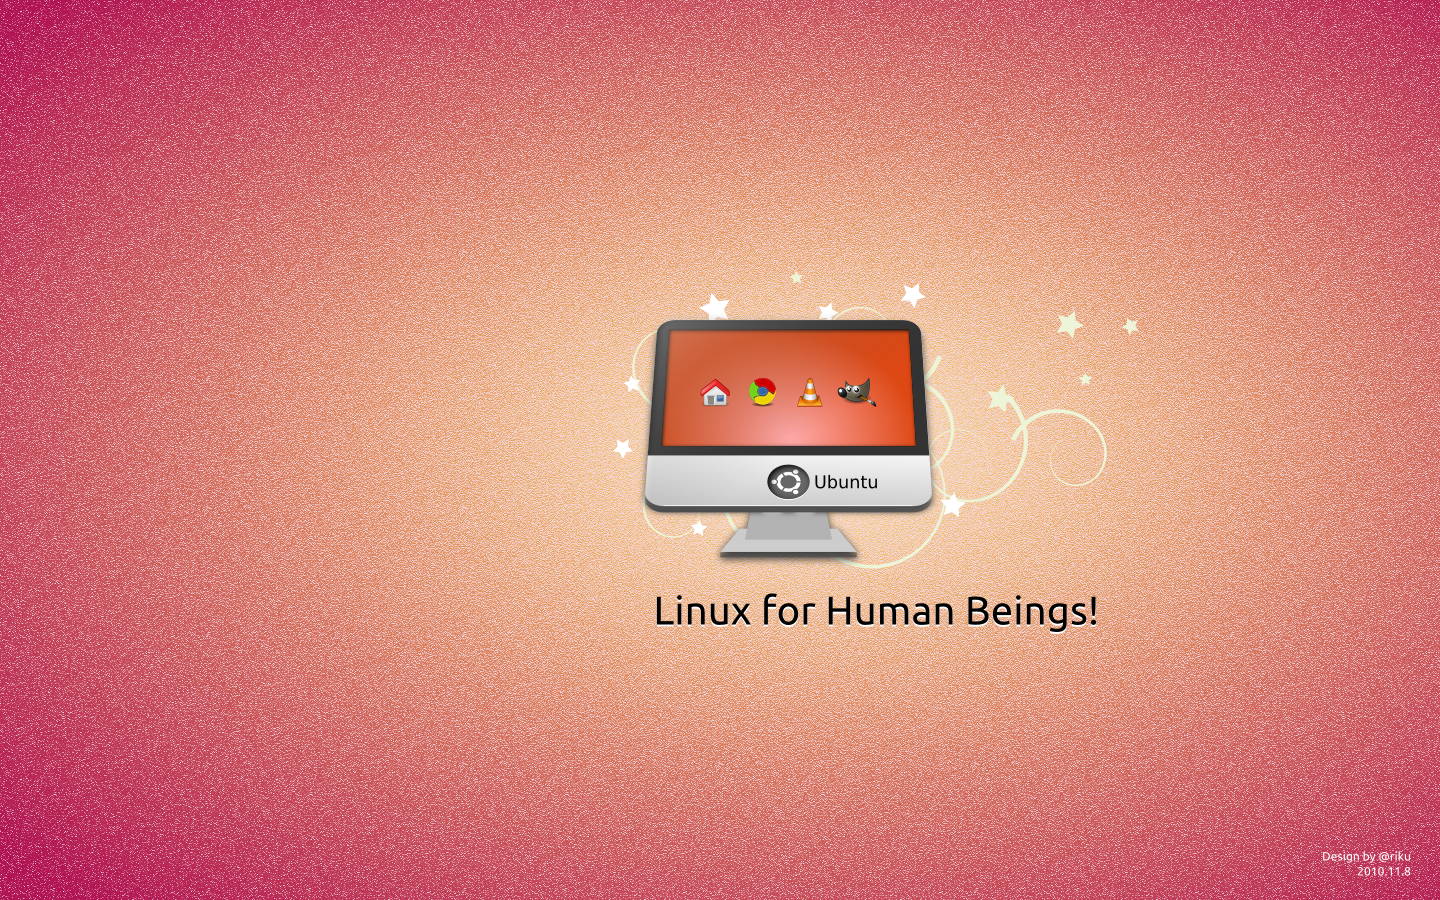 Ubuntu Linux for human beings by rikulu